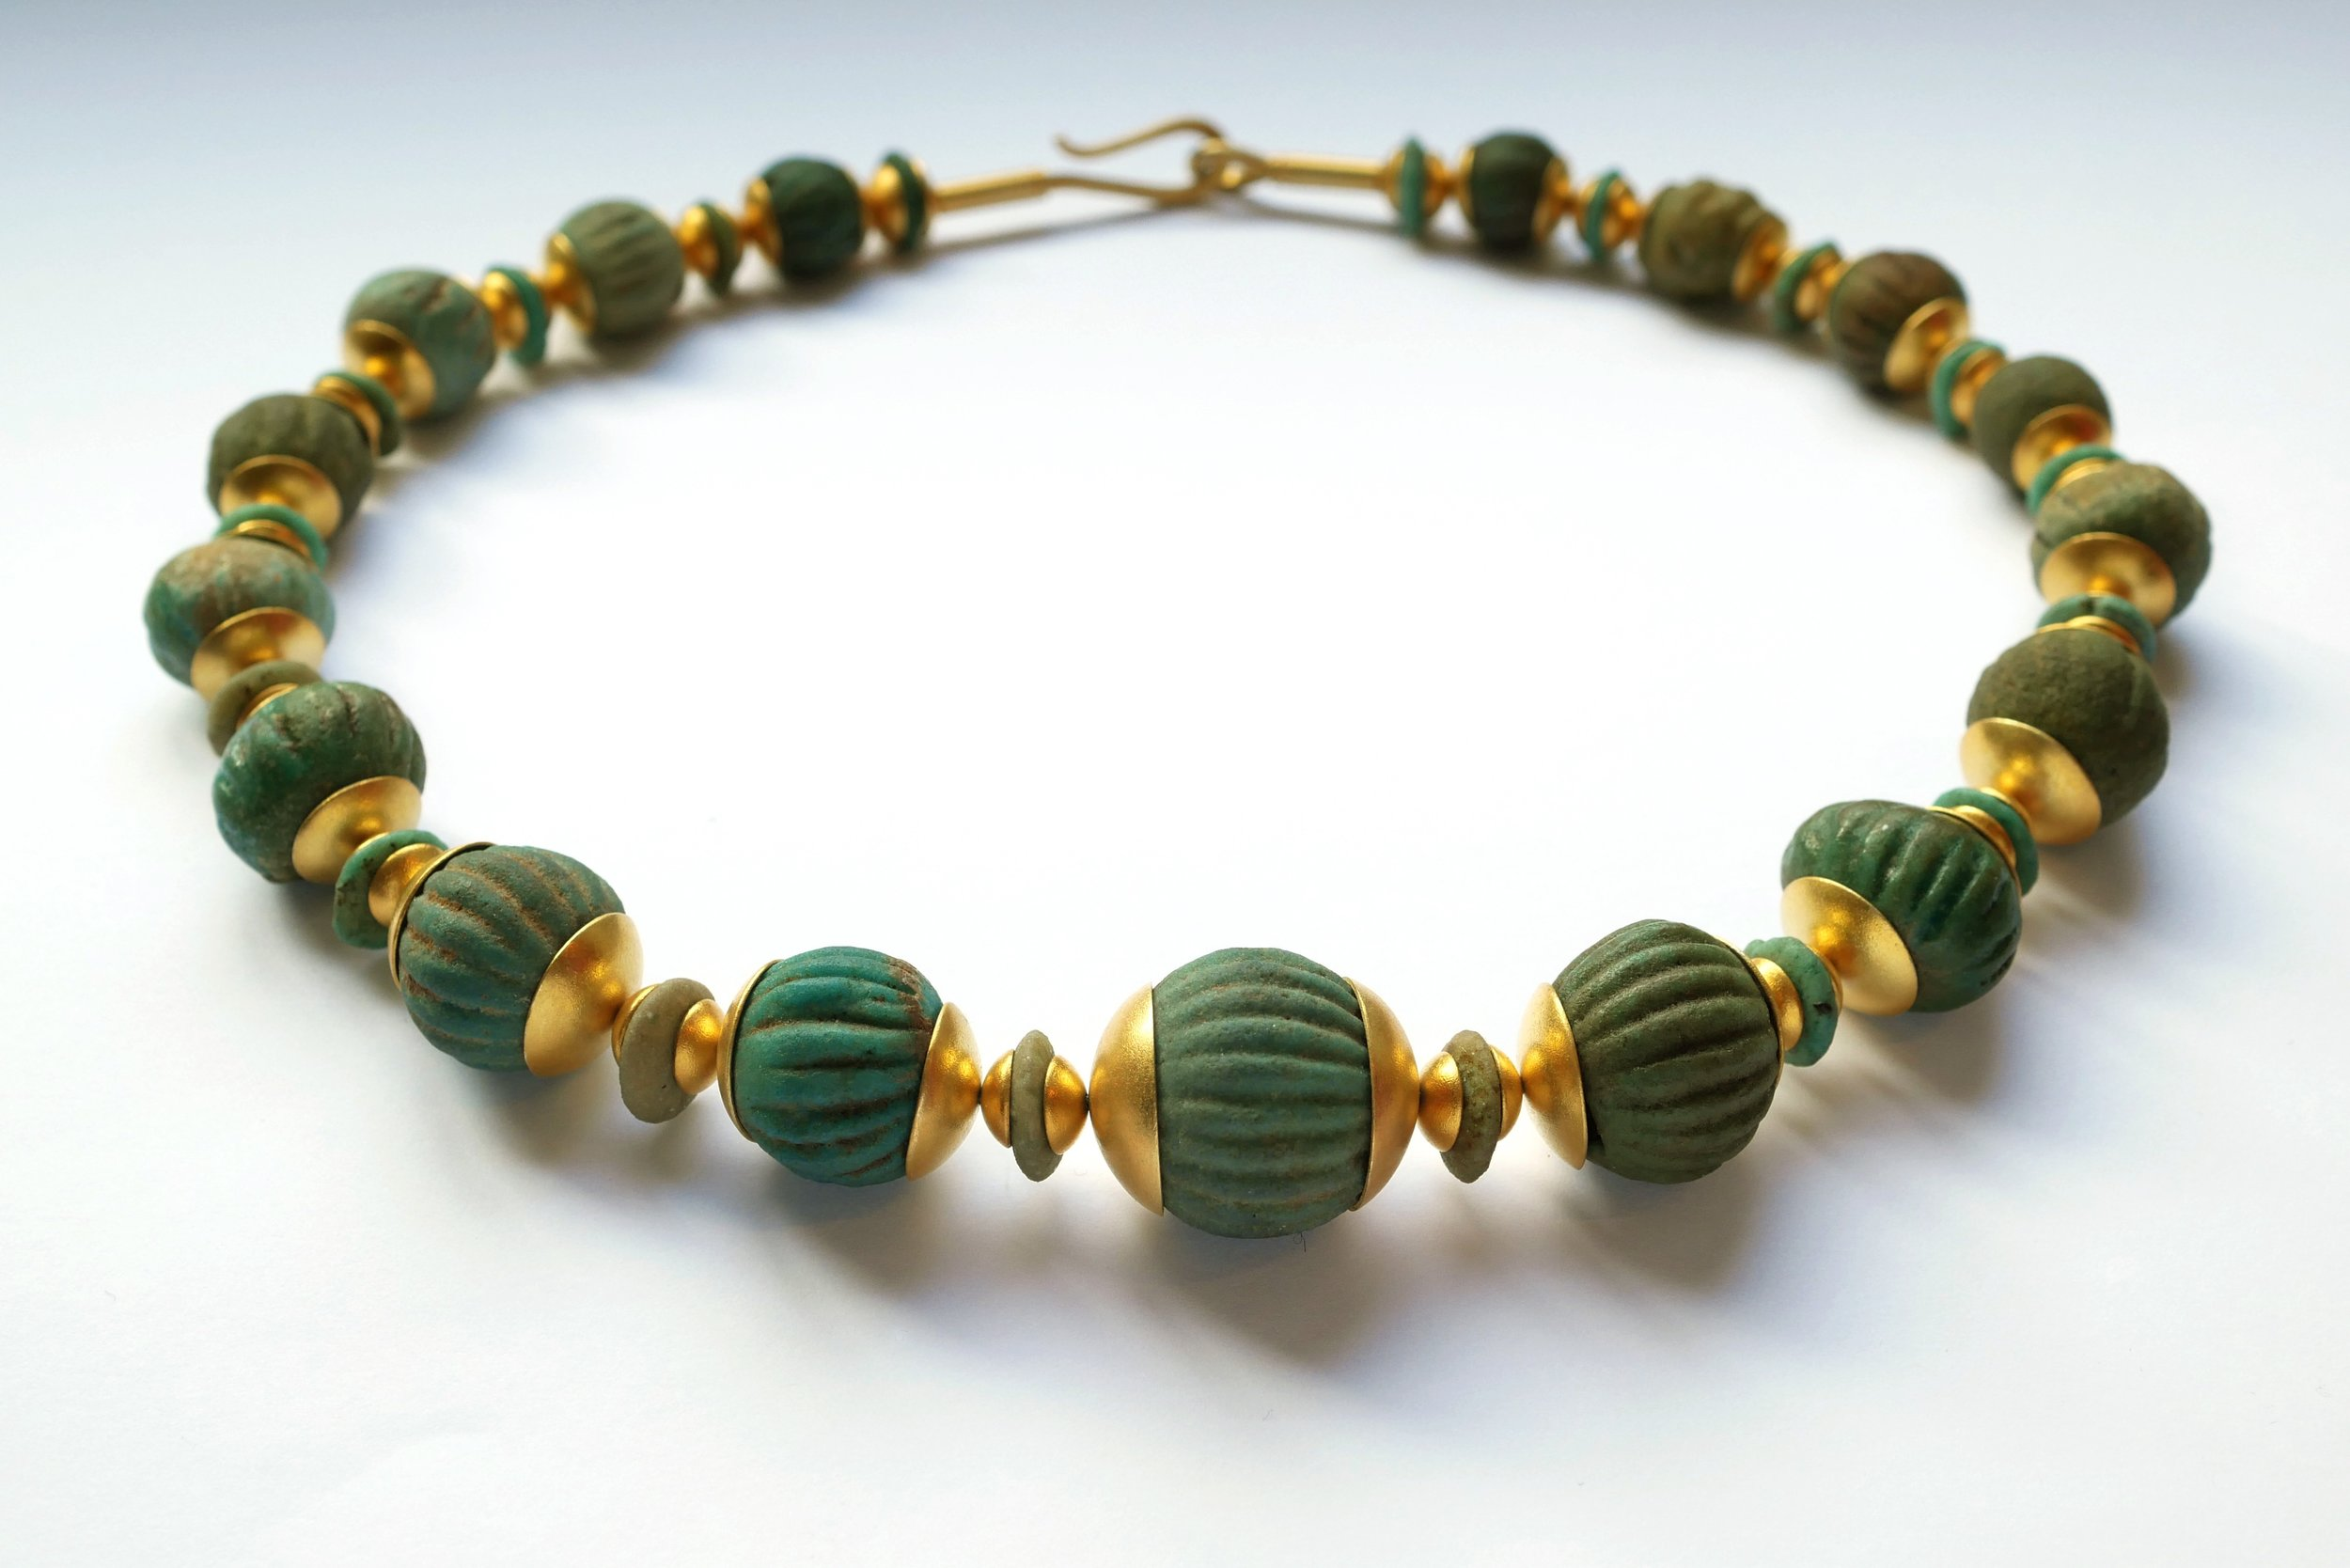 necklace_romanmelonbeads1.jpg